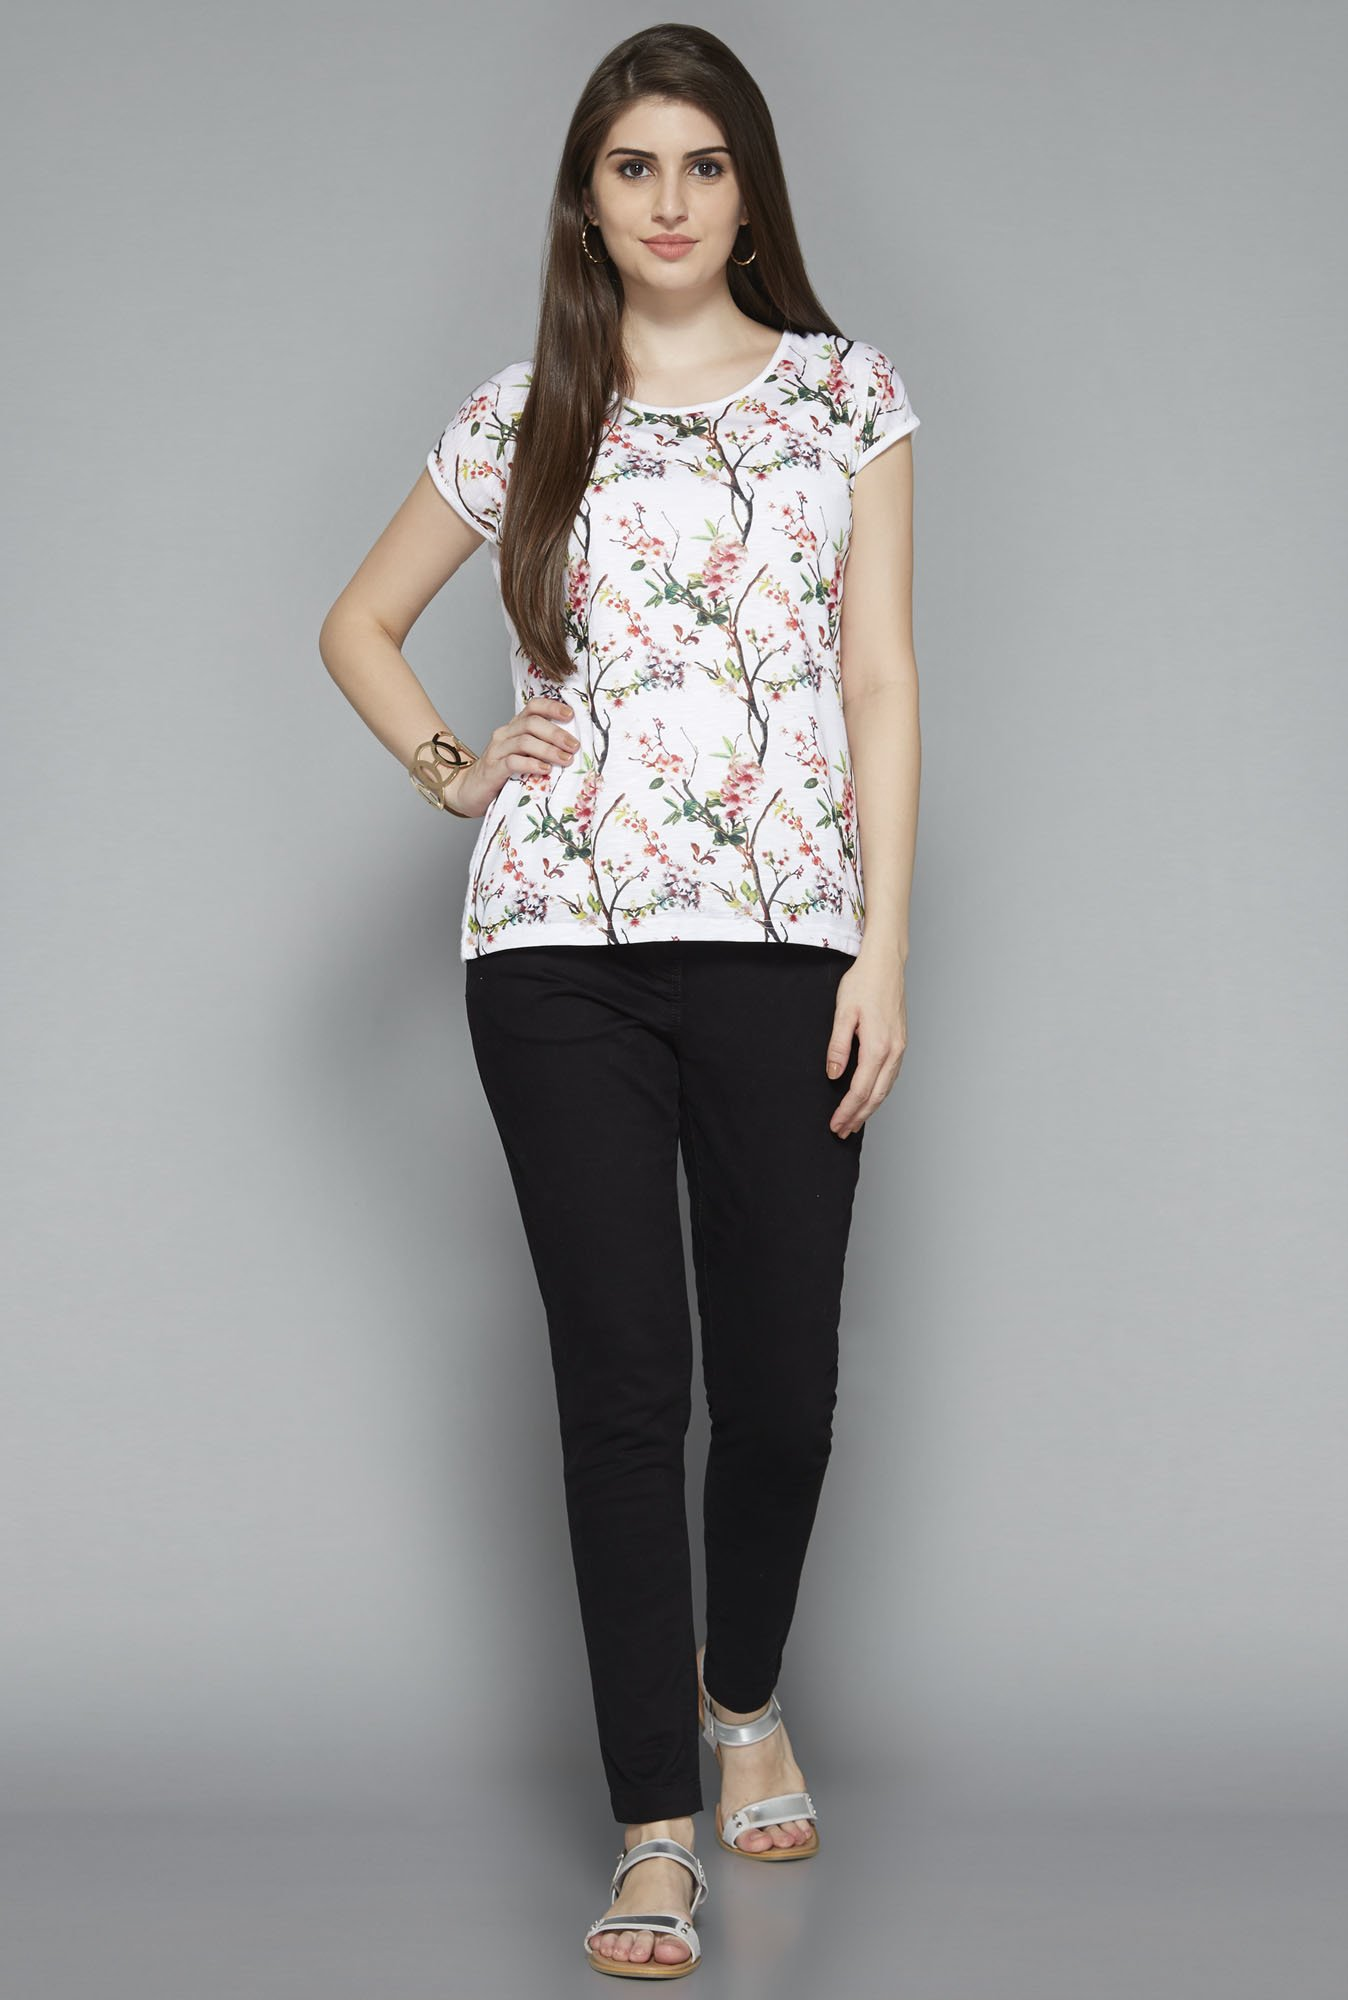 LOV by Westside White Floral Print T Shirt